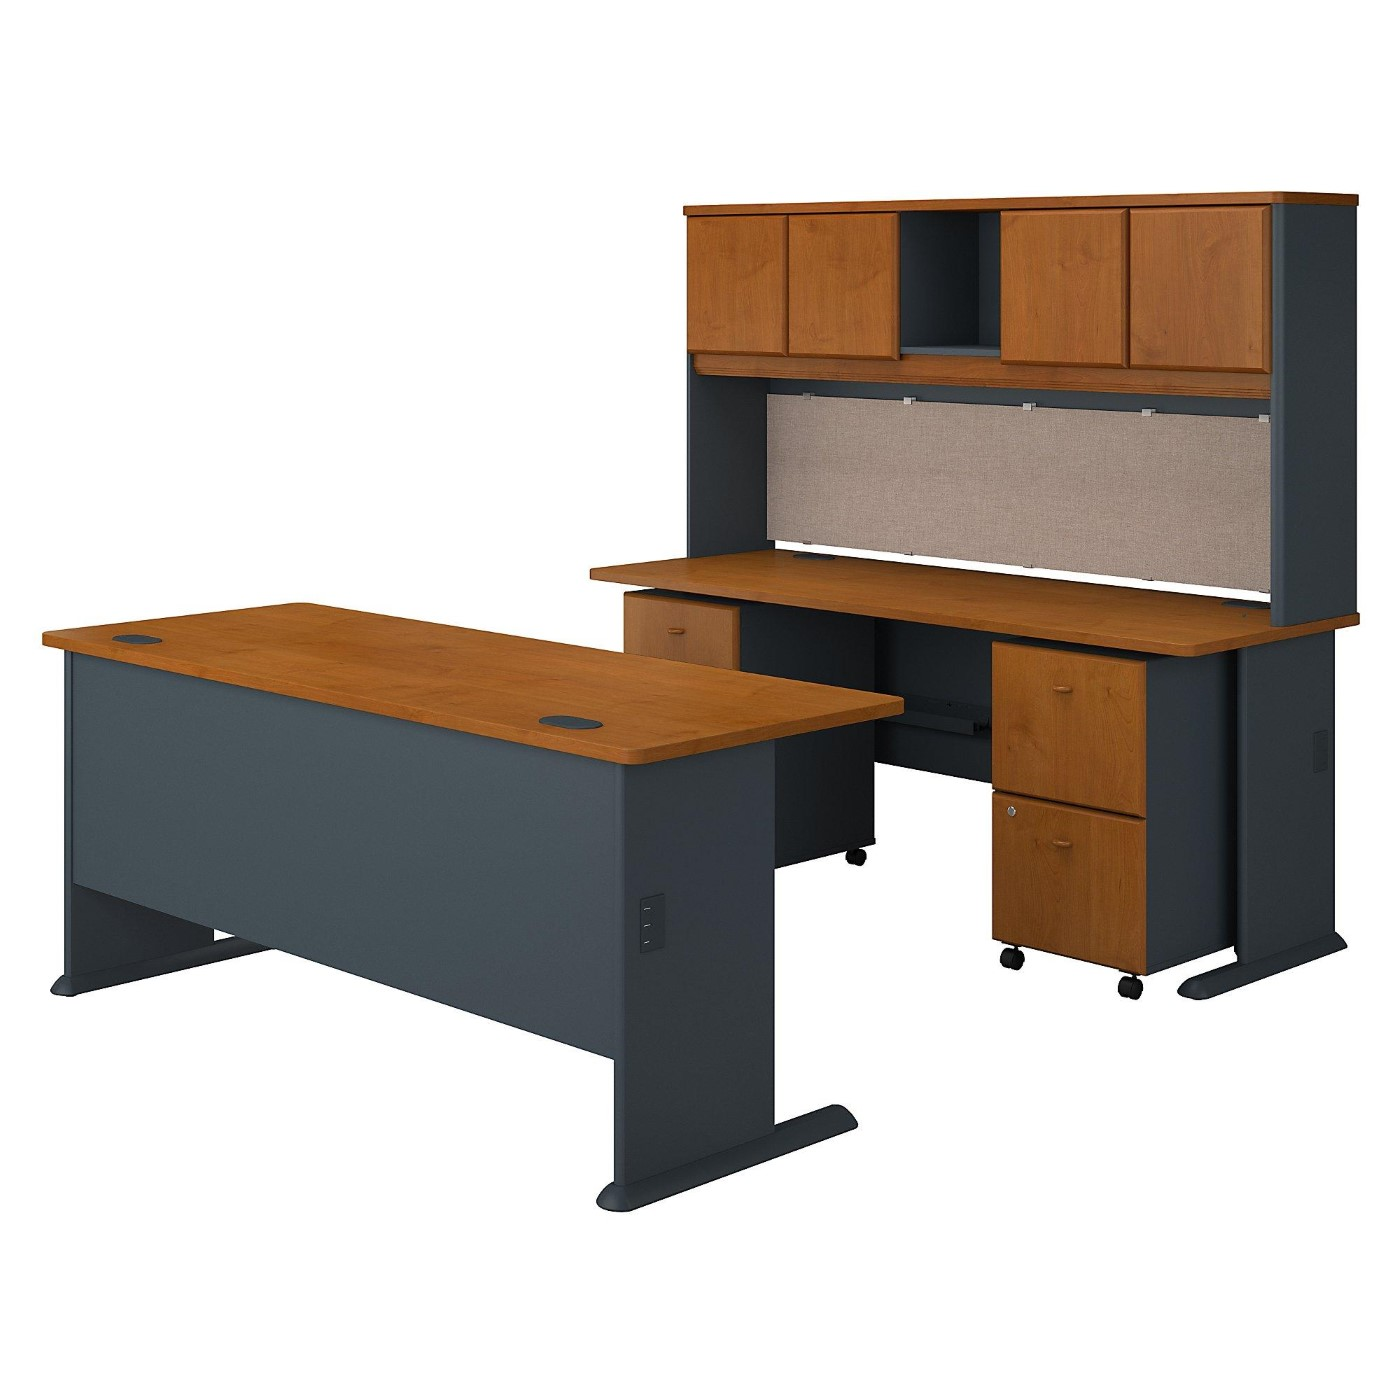 <font color=#c60><b>BUSH BUSINESS FURNITURE SERIES A 72W DESKS WITH HUTCH AND MOBILE FILE CABINETS. FREE SHIPPING</font></b></font>